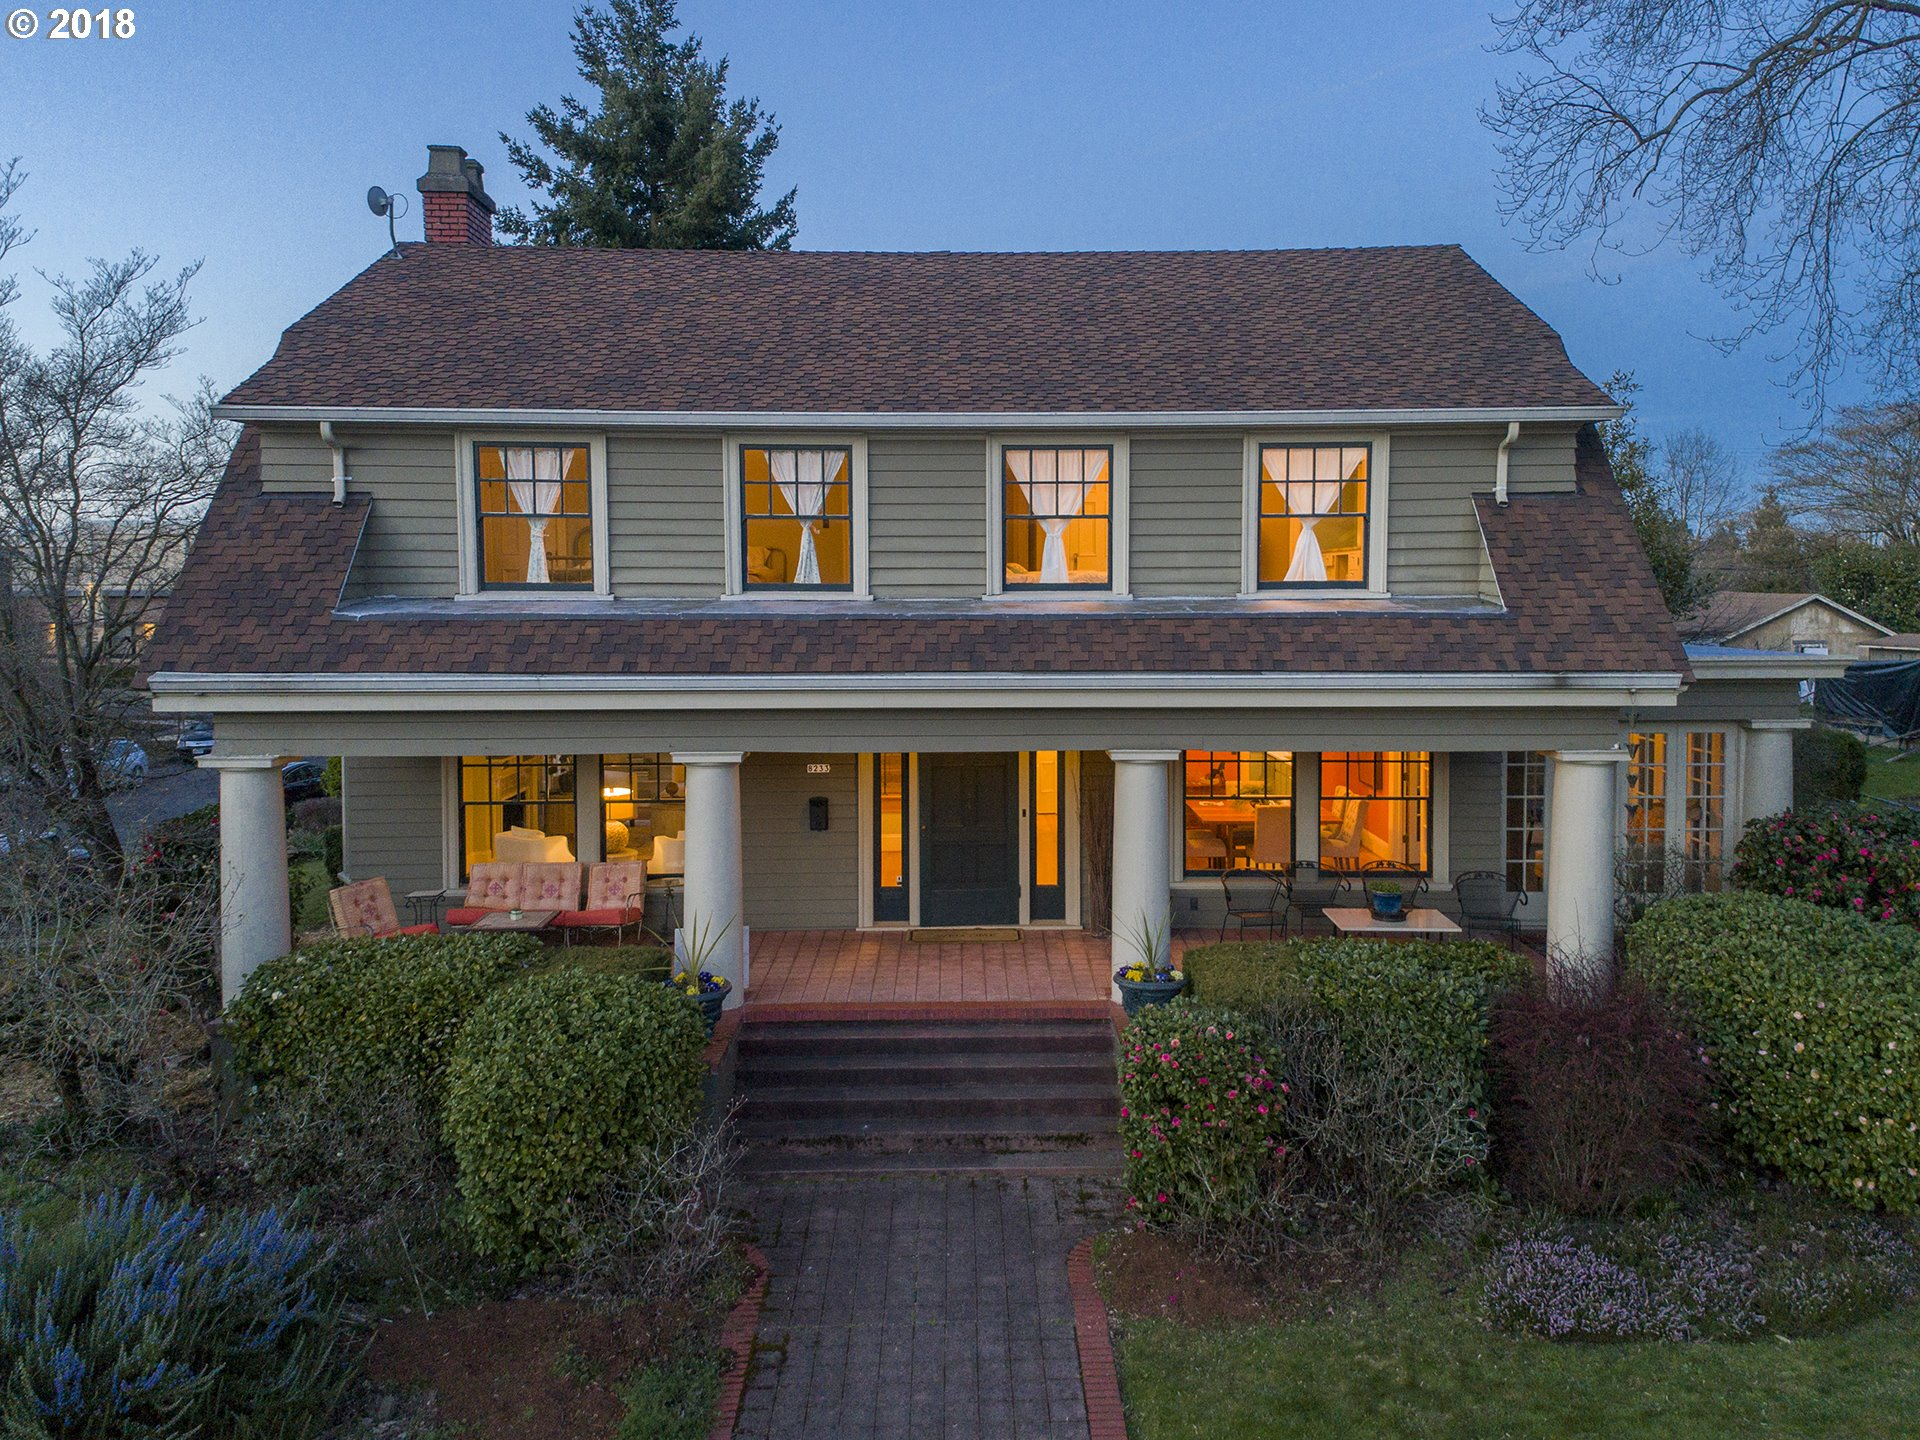 This grand 15 room home built by Thomas Auzten, of Autzen Stadium @ U of O, now on the market by its current steward.This tastefully restored Dutch Colonial has views of St. Johns Bridge, Willamette River & forest park, 60 Ft.covered porch w/ massive columns.Grand staircase, egg-&-dart molding, built-ins 3 bright & spacious bedrooms upper flr, 3 sun rms,Guest Quarters, w/separate ent. 2 fireplaces, updated kitchen.